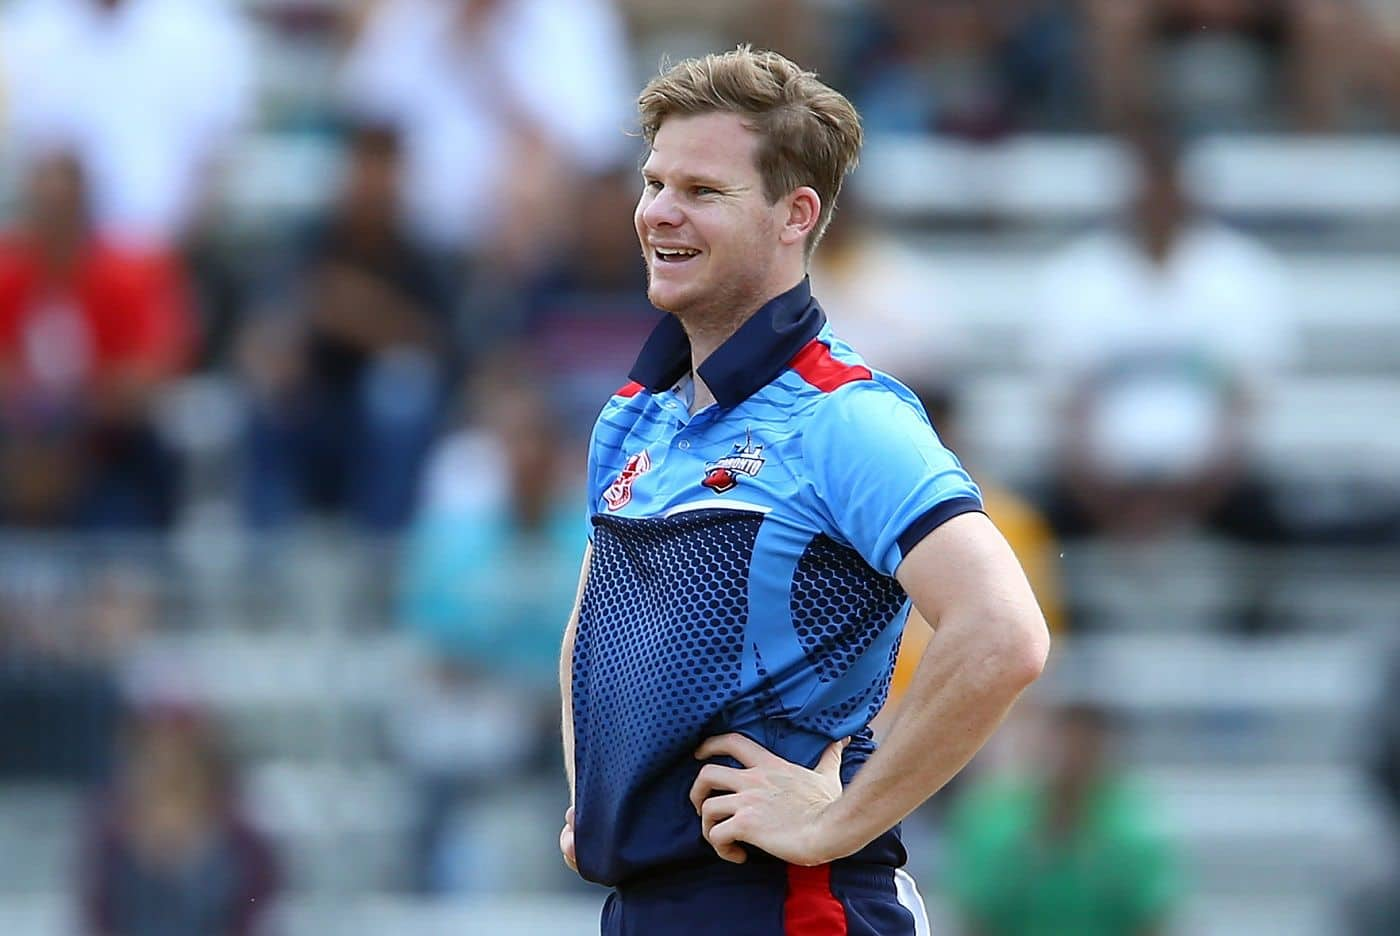 Steven Smith can expect warm welcome in club cricket: Steve Waugh